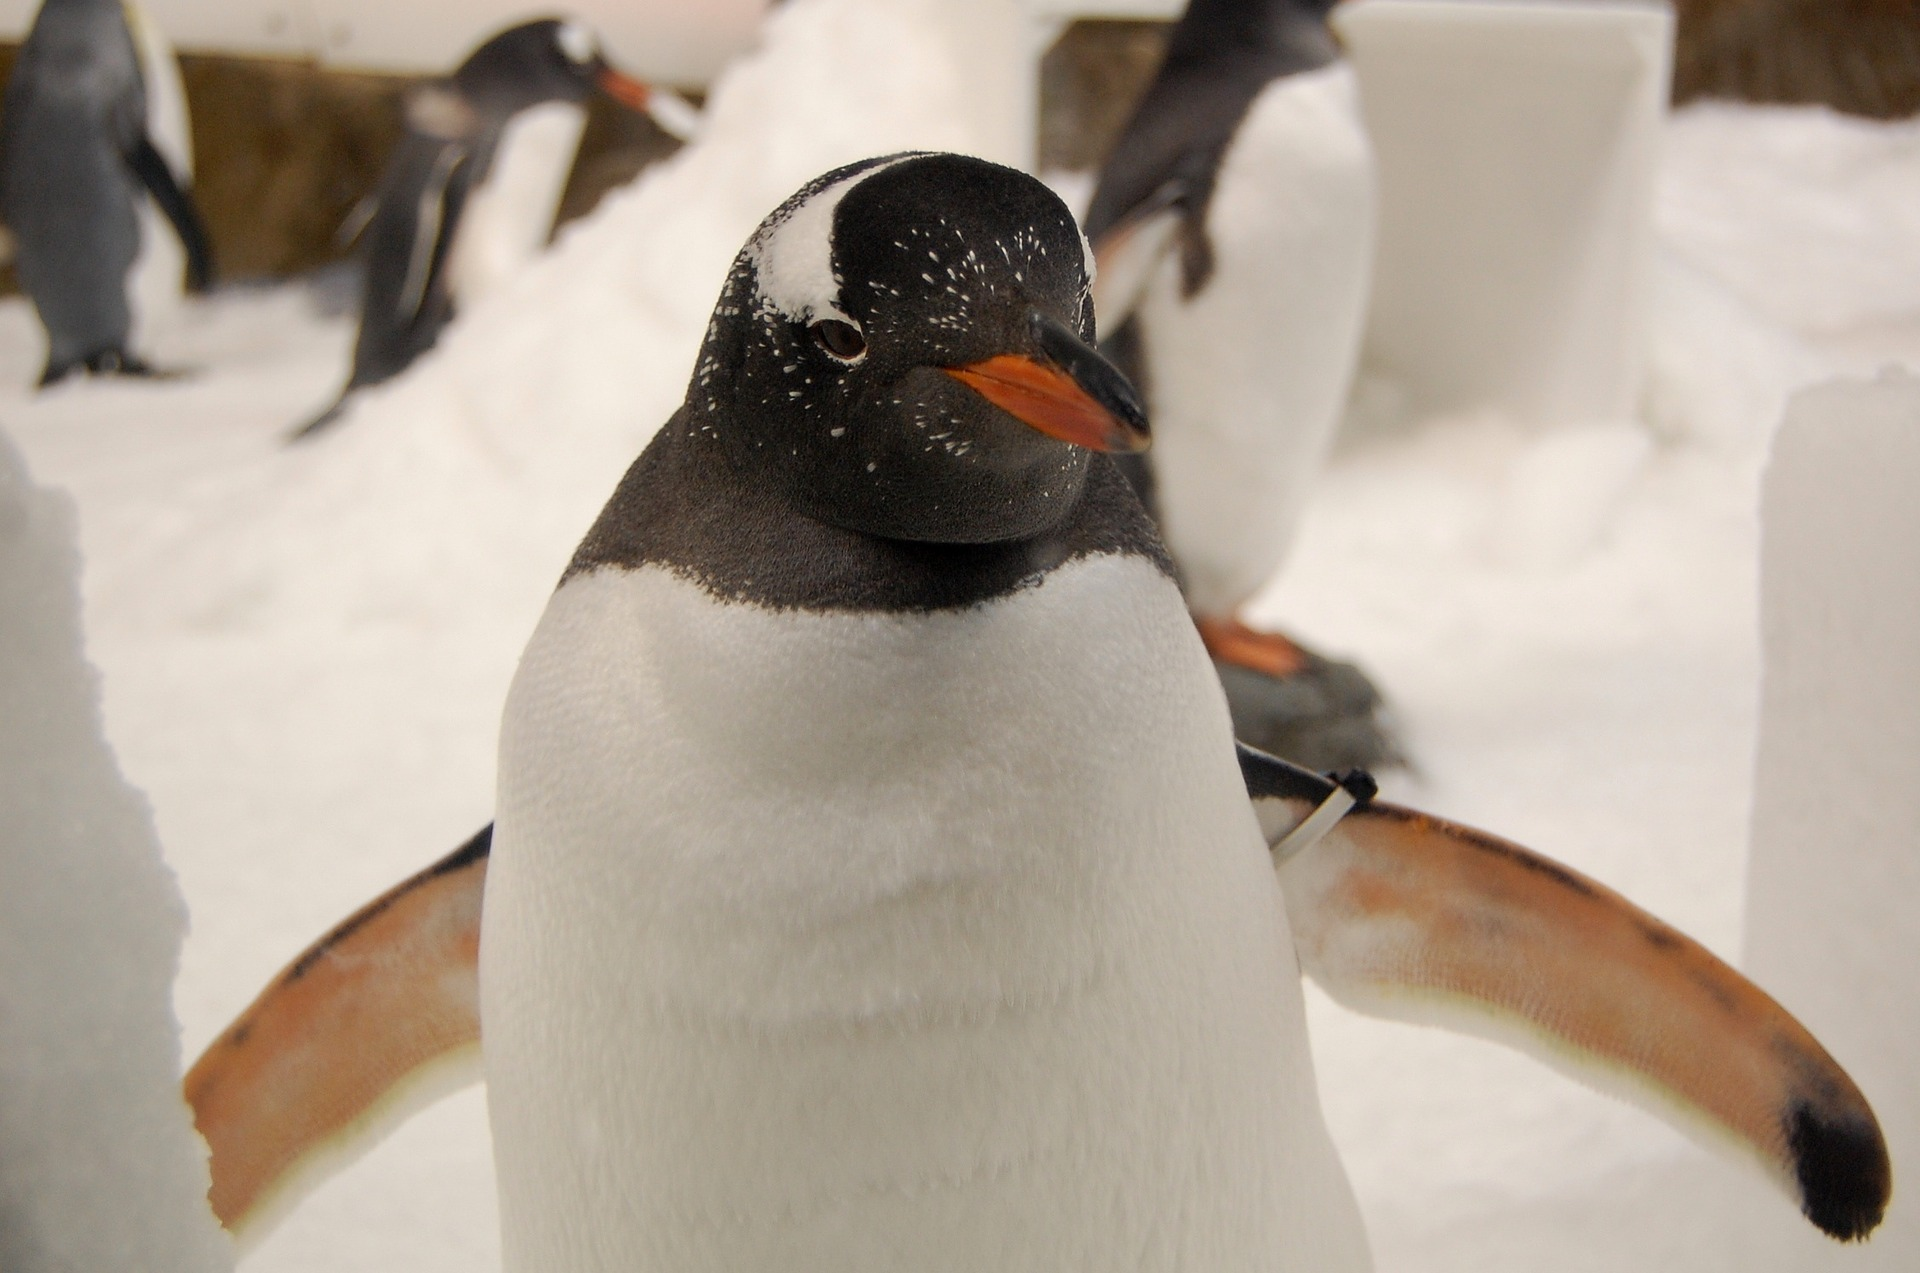 Gentoo penguin. Image by LoneWombatMedia from Pixabay